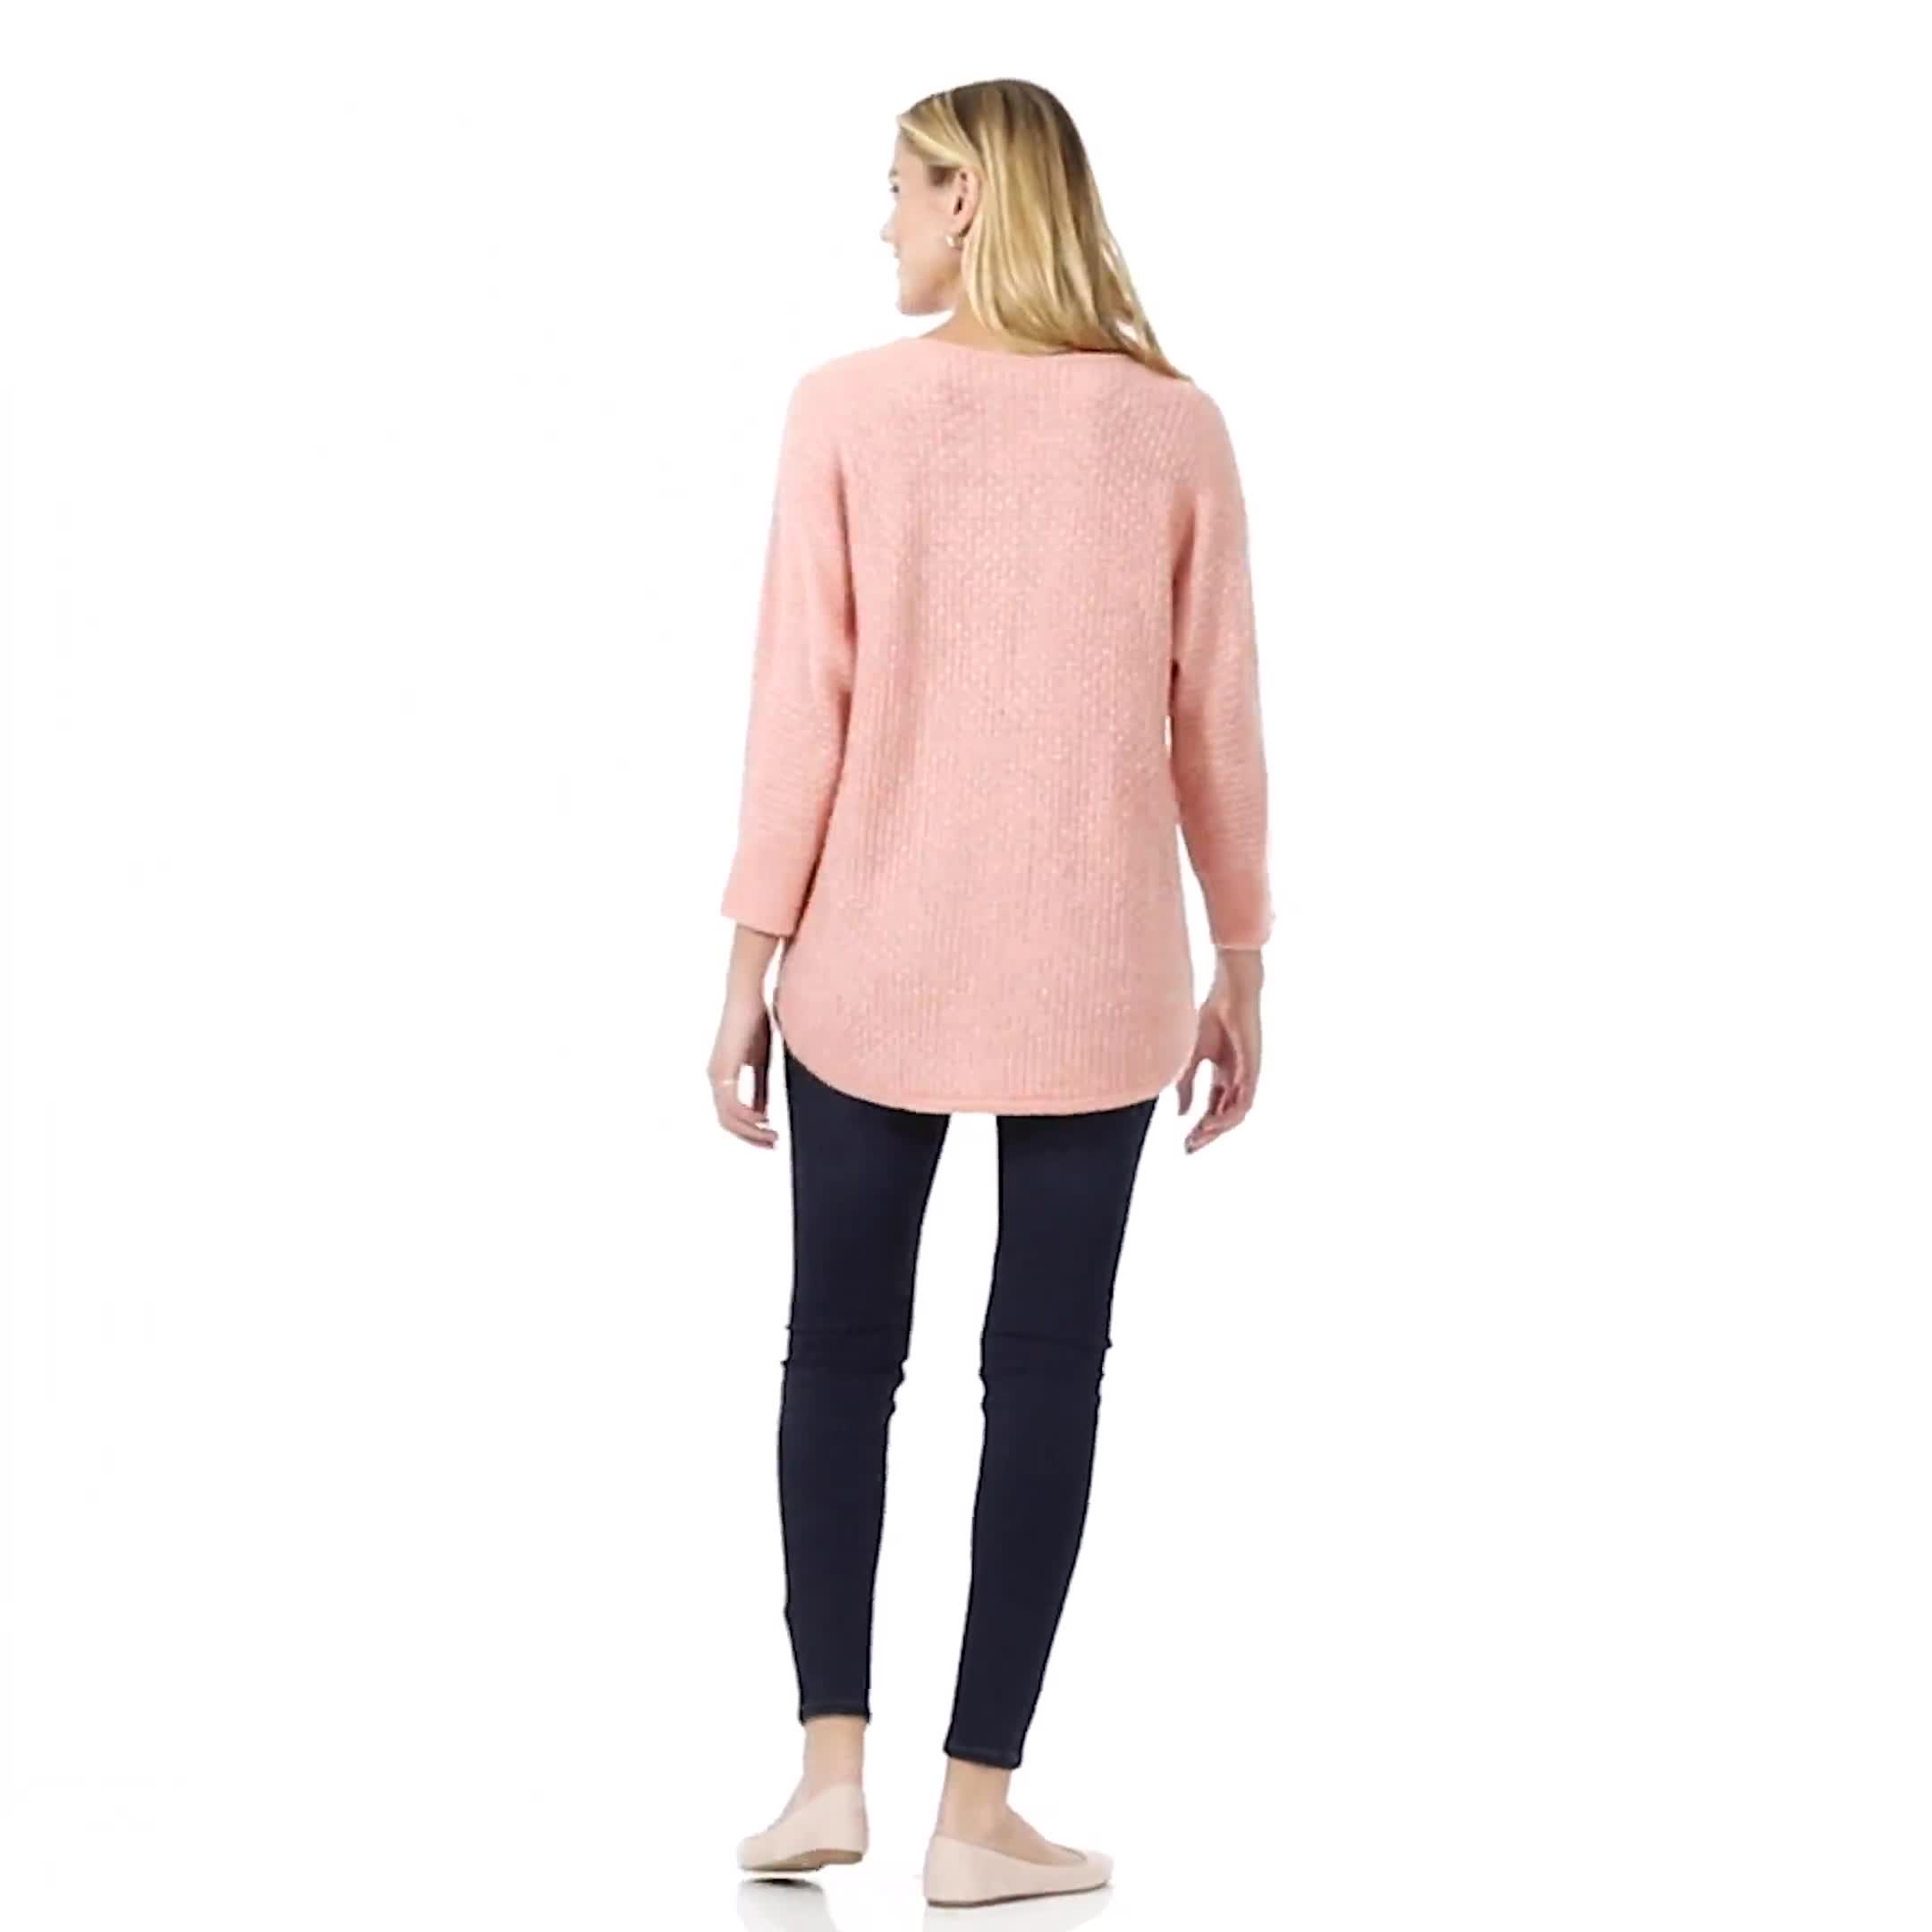 Westport Basketweave Stitch Curved Hem Sweater - Video